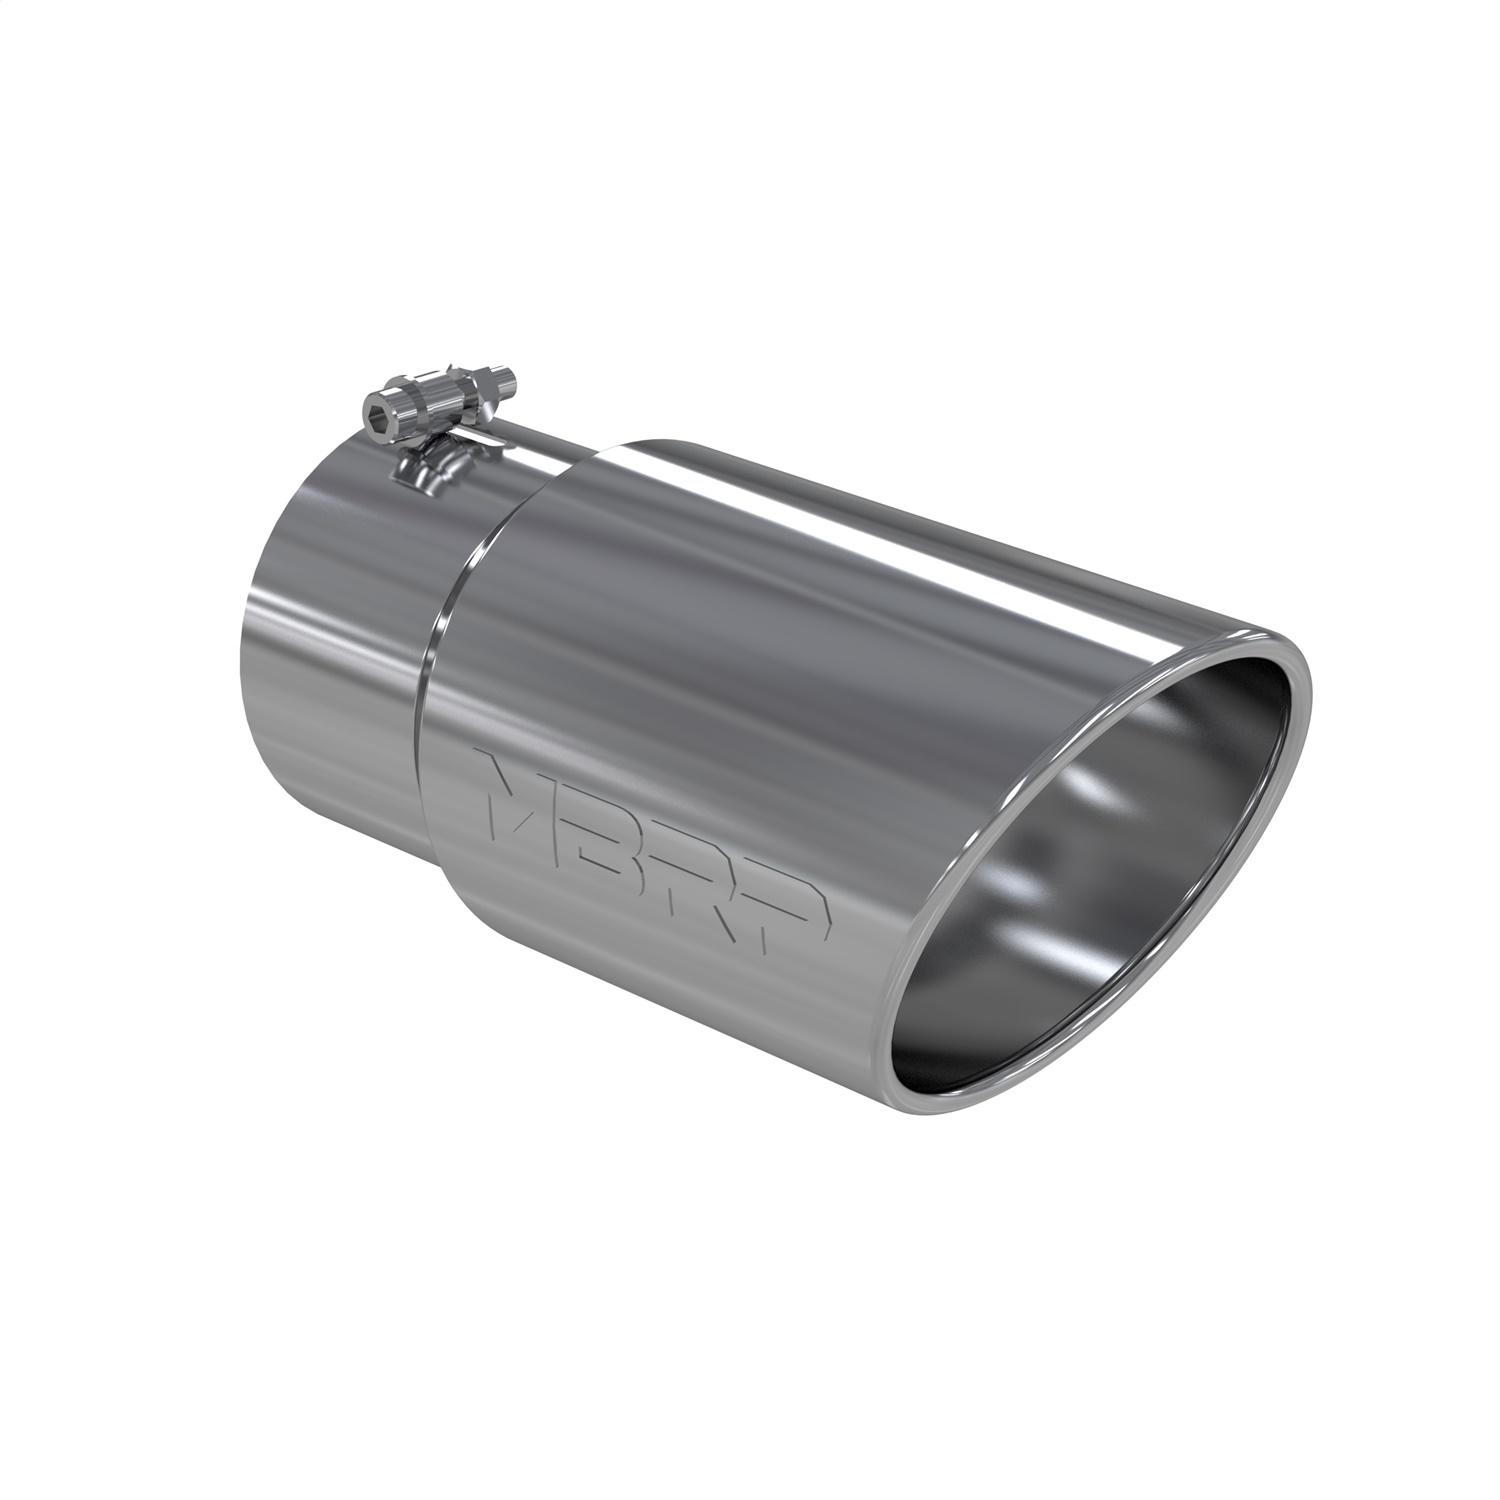 MBRP Exhaust Exhaust Tail Pipe Tip (T5075)